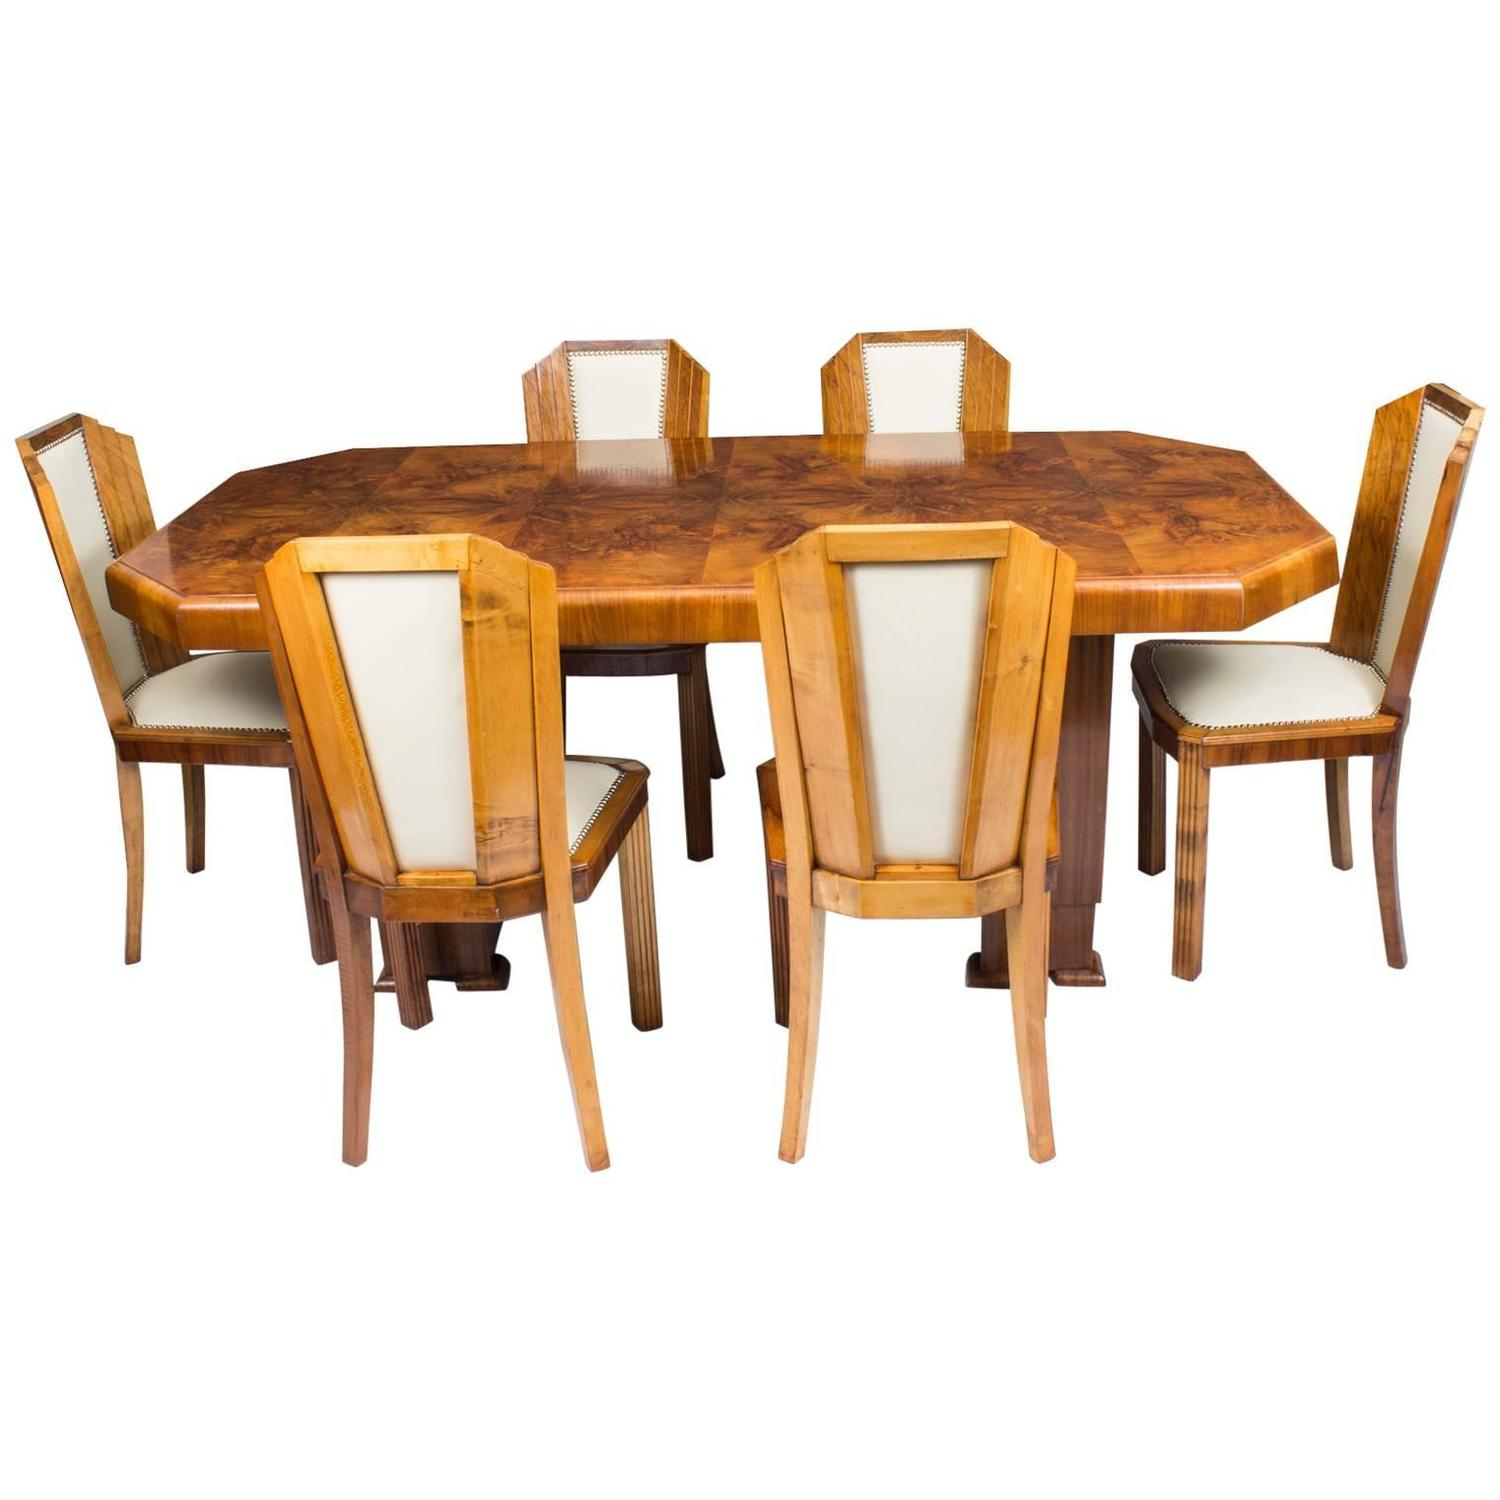 1930s art deco burr walnut dining table six chairs for sale at 1stdibs - Dining Room Furniture Dallas